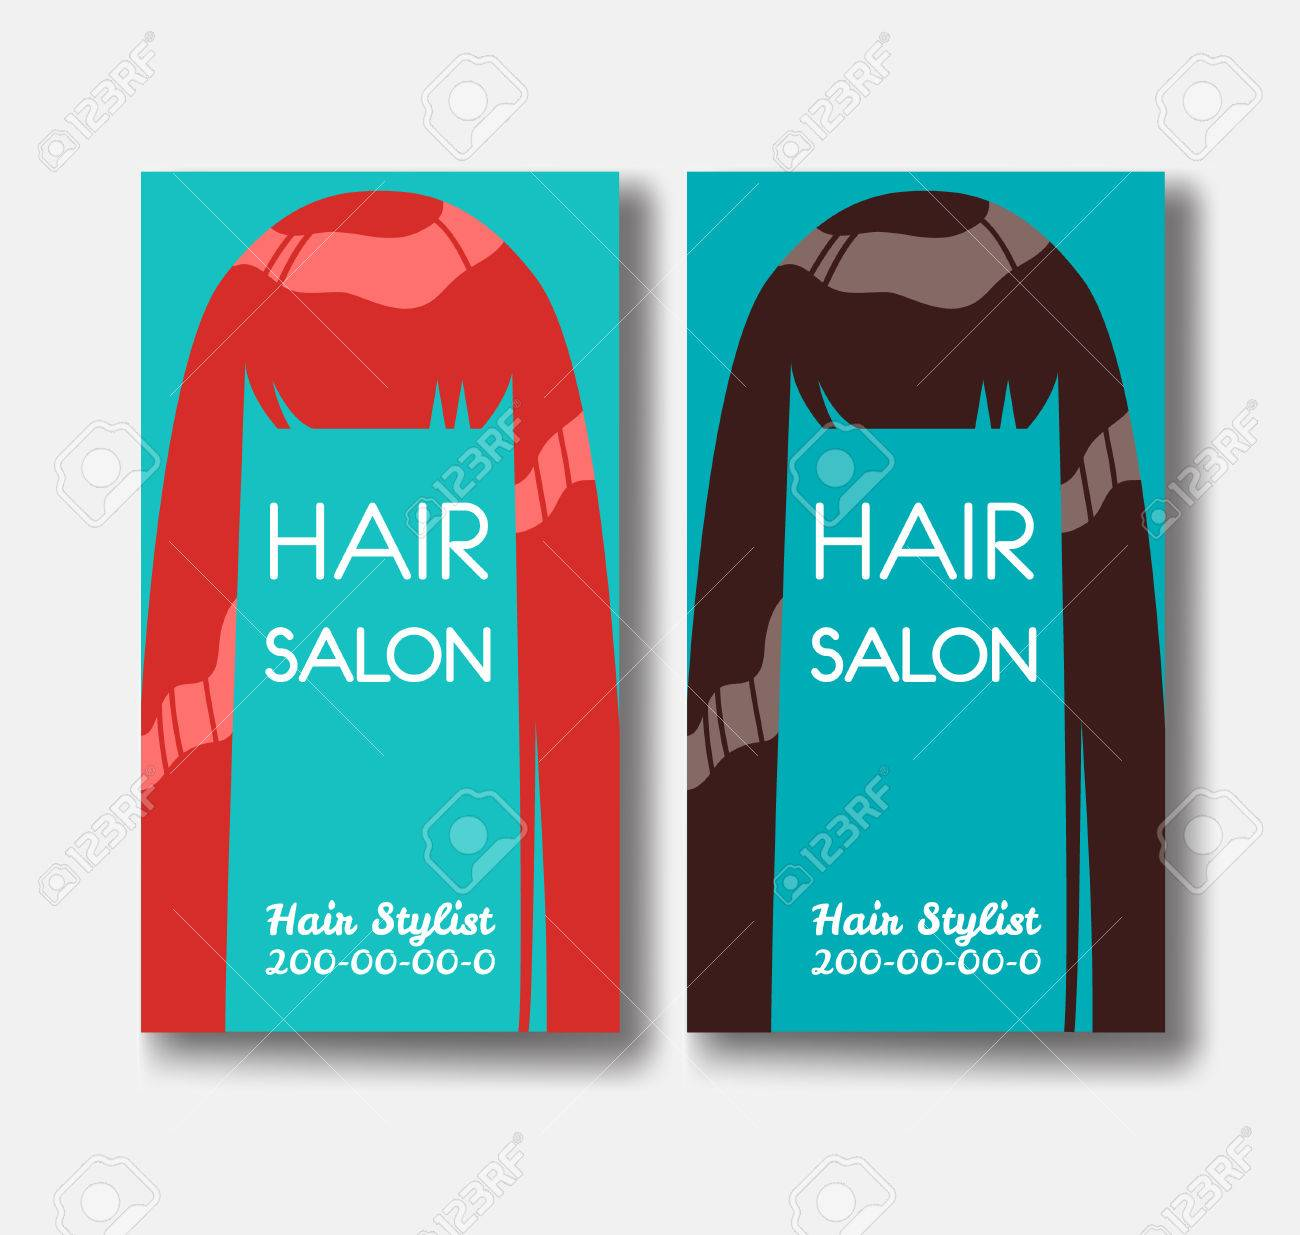 Hair salon business card templates with red hair and brown hairo hair salon business card templates with red hair and brown hairo stock vector 76074280 fbccfo Images